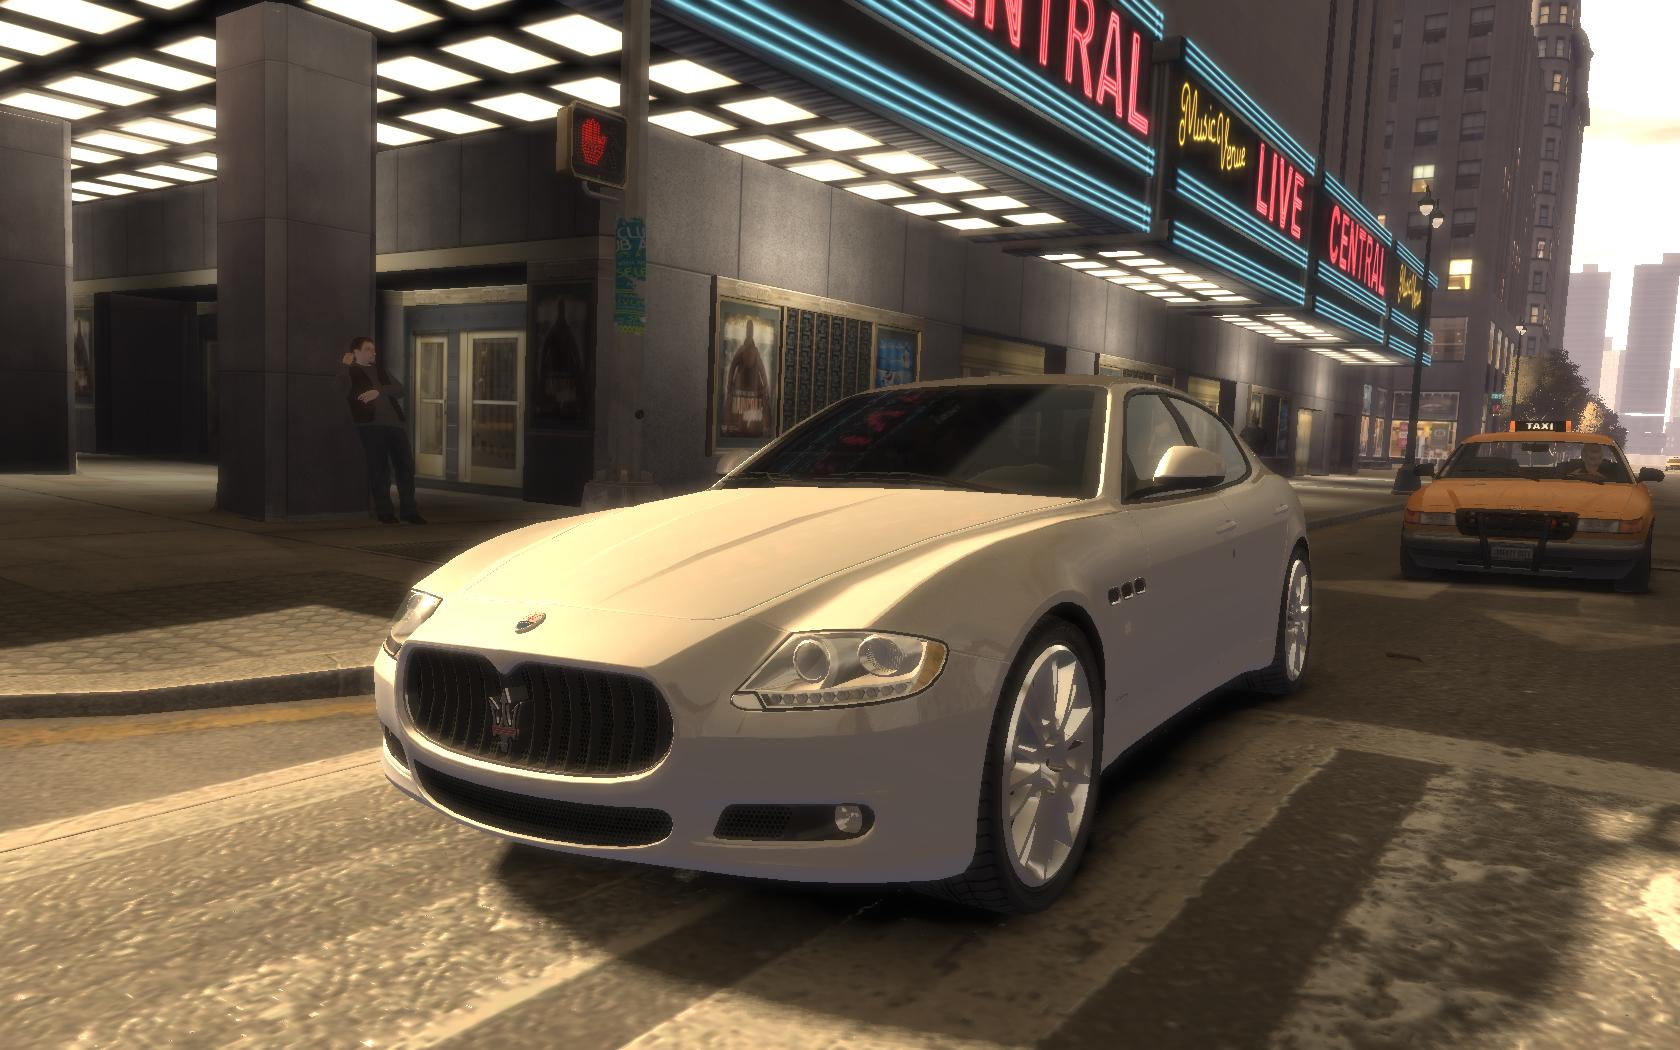 maserati quattroporte sport gt s vehicules pour gta iv sur gta modding. Black Bedroom Furniture Sets. Home Design Ideas